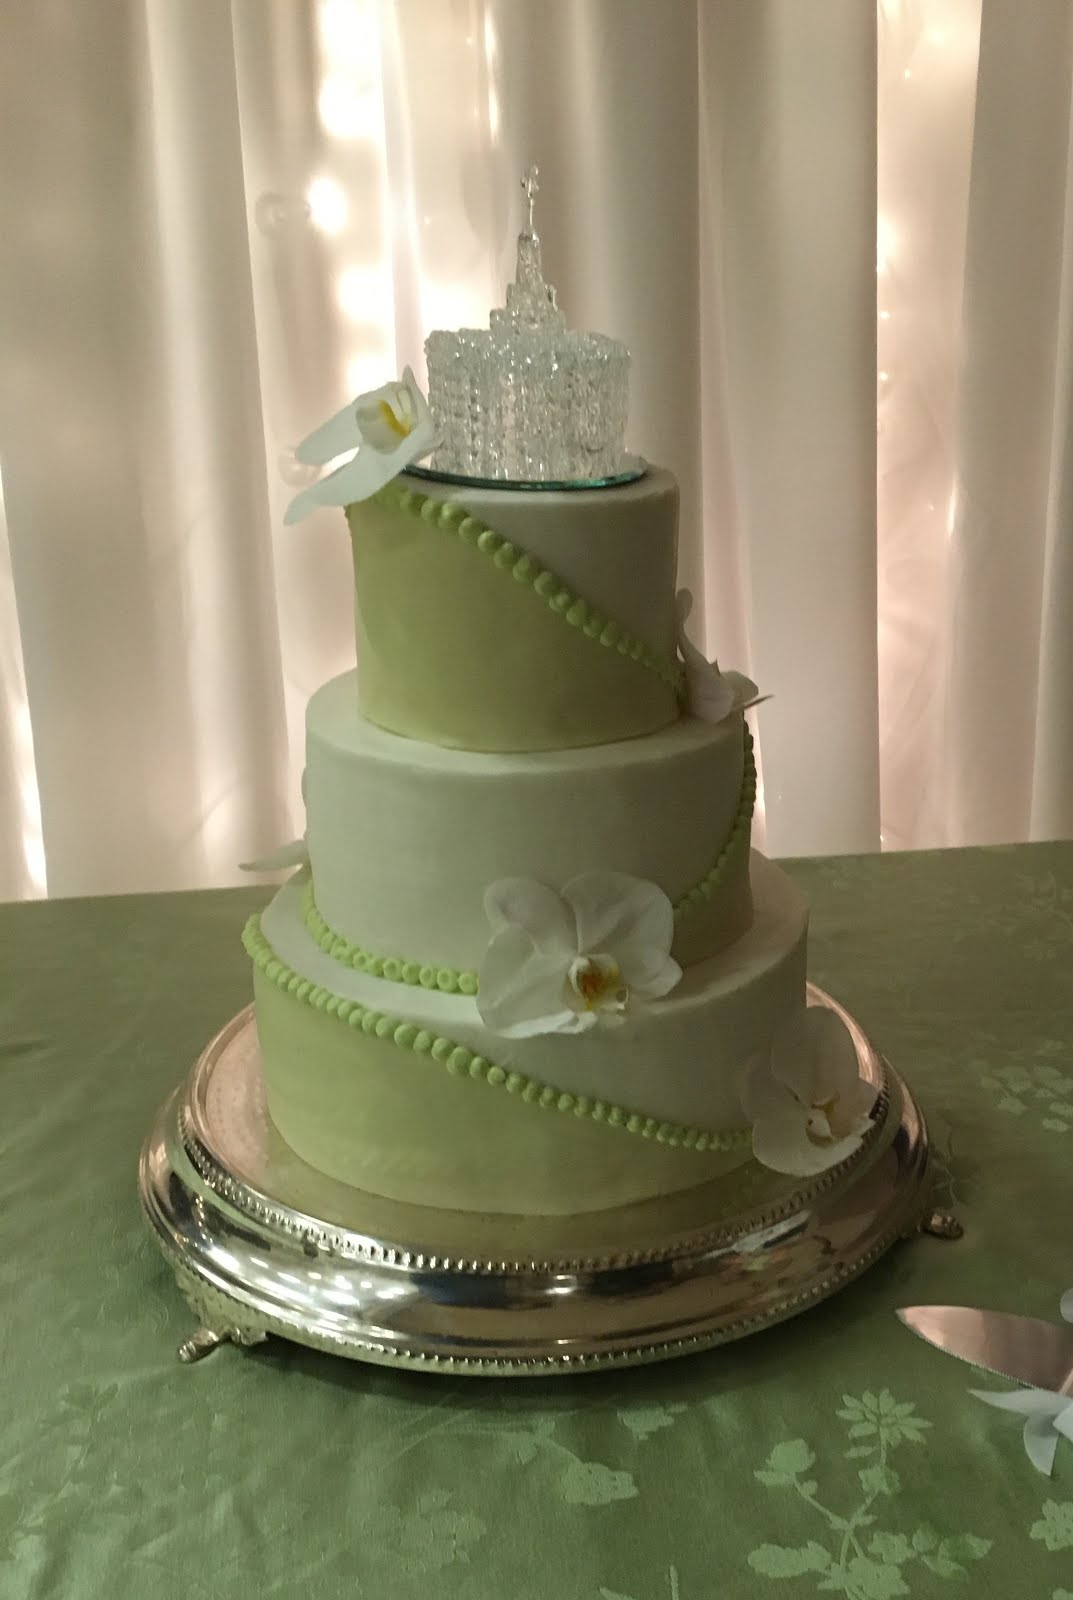 3-tier round fondant and buttercream